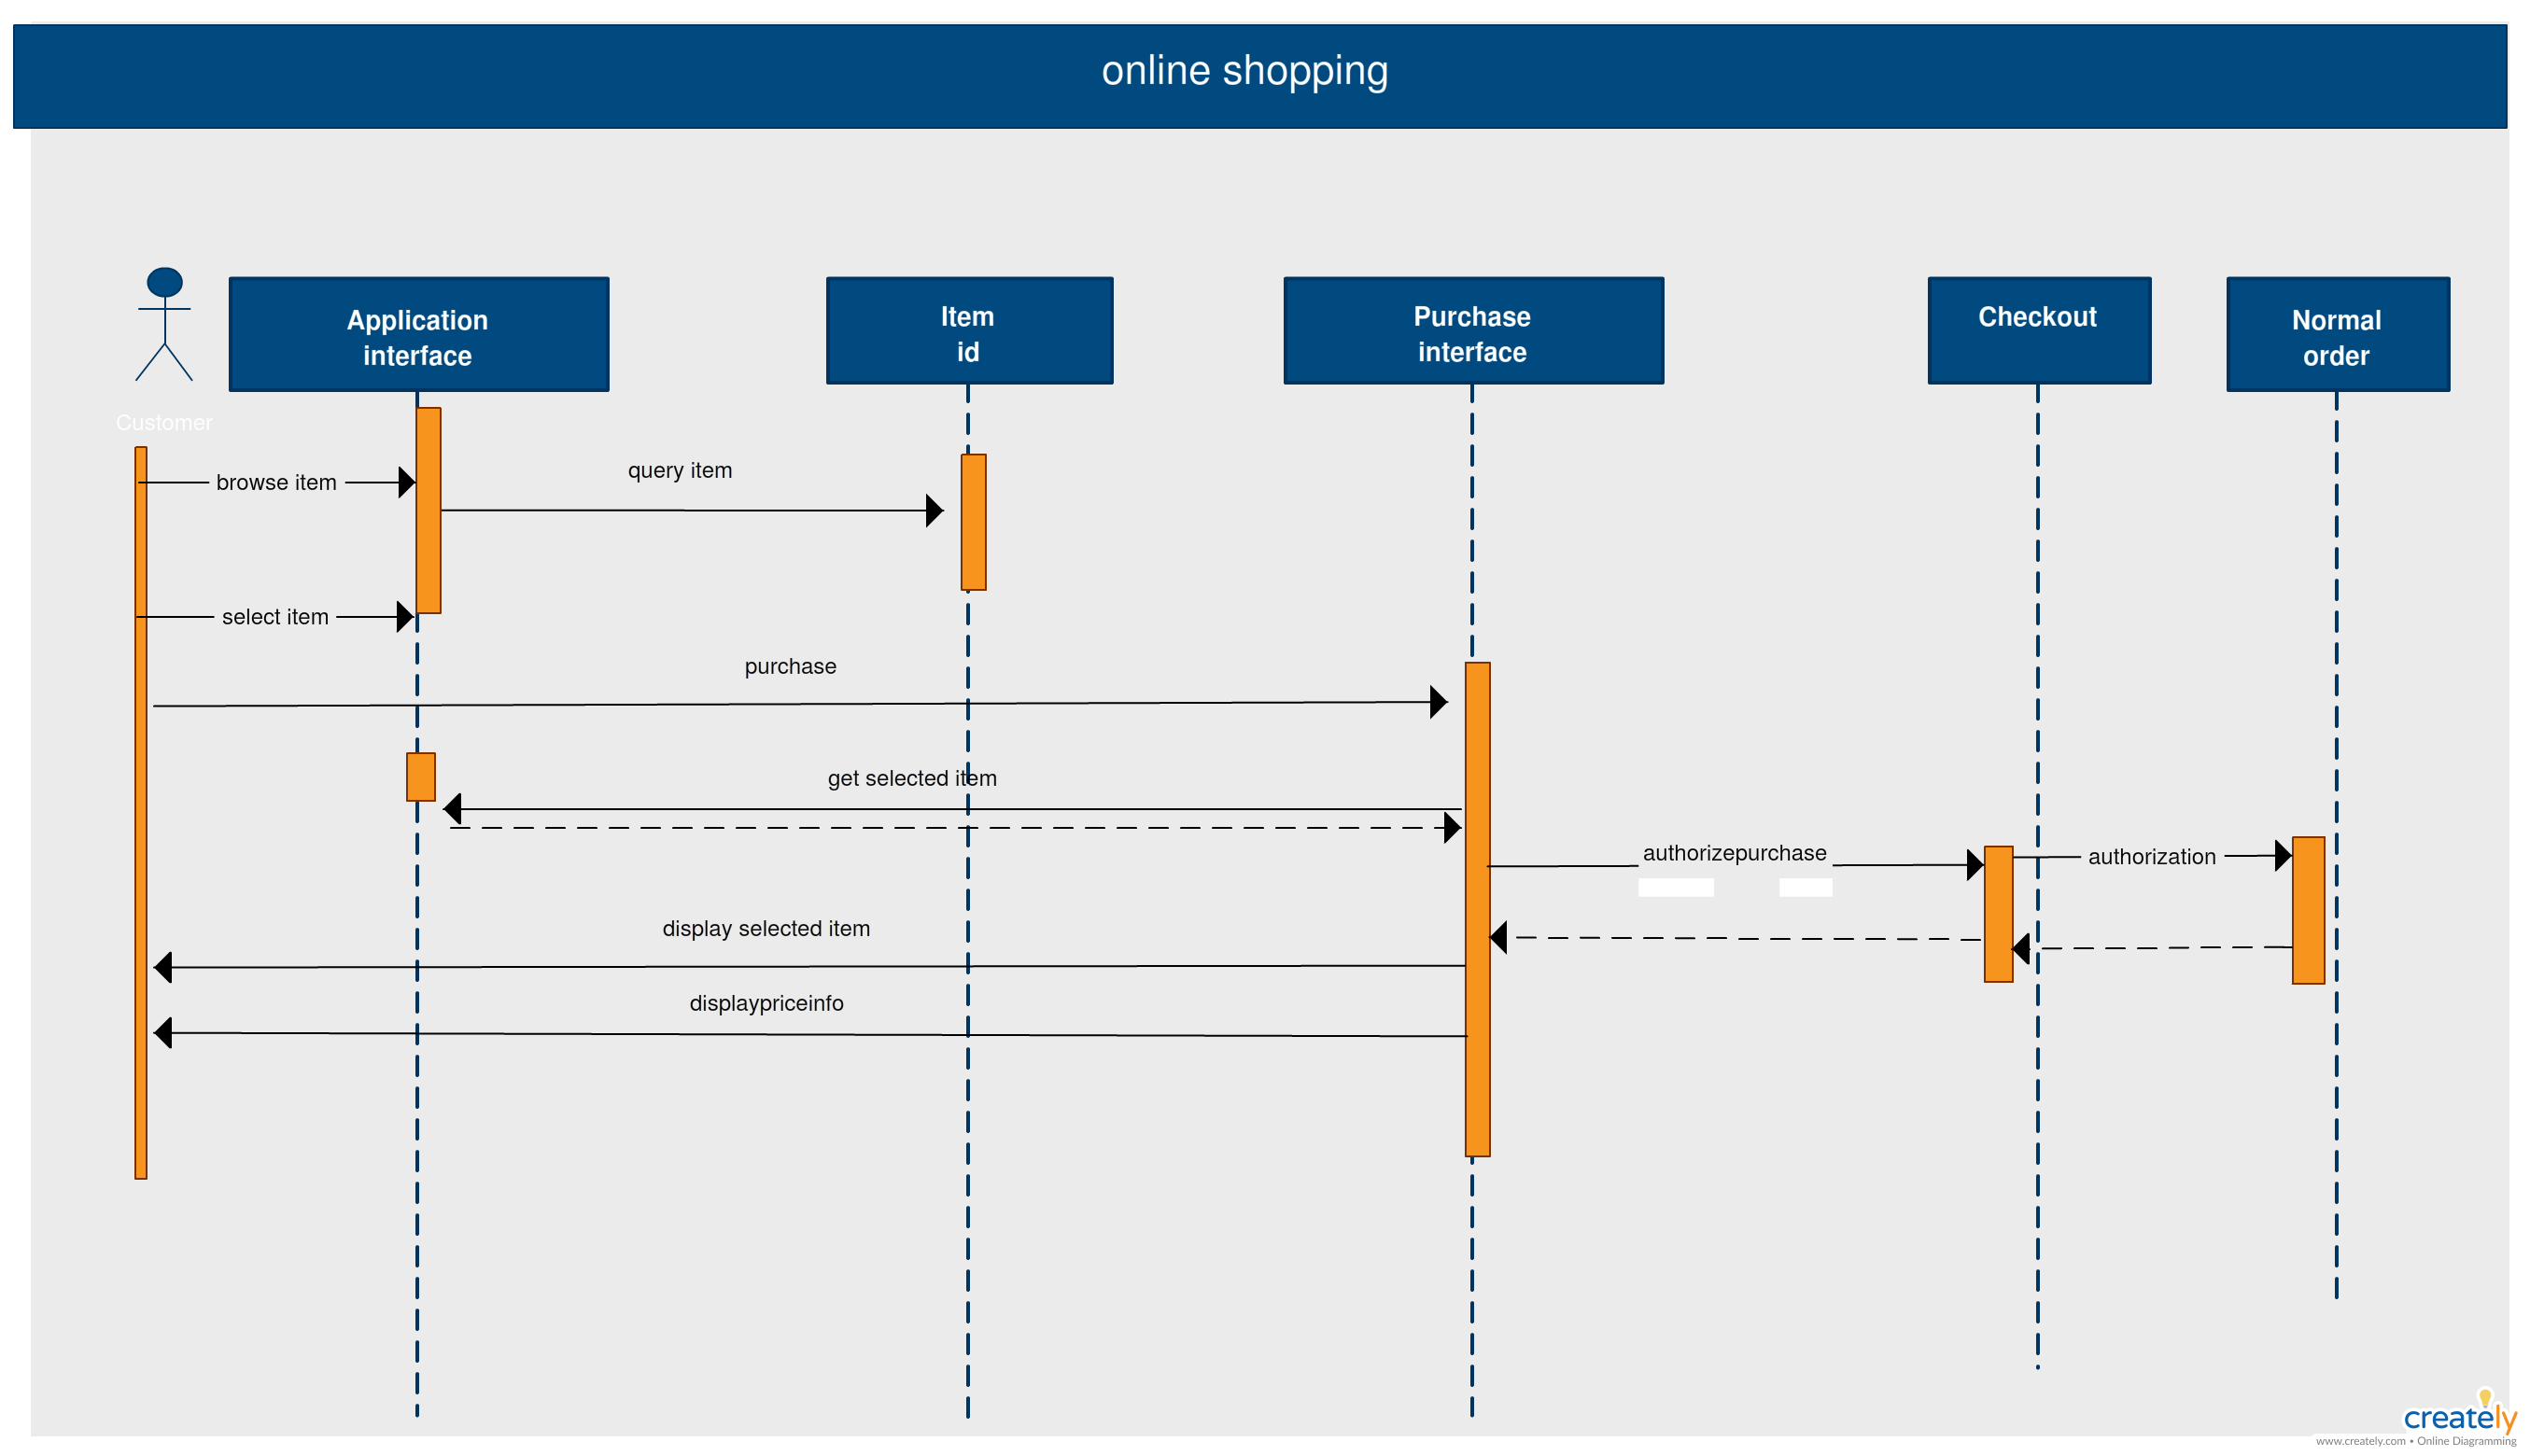 Sequence diagram template of online shopping system. Click on the ...